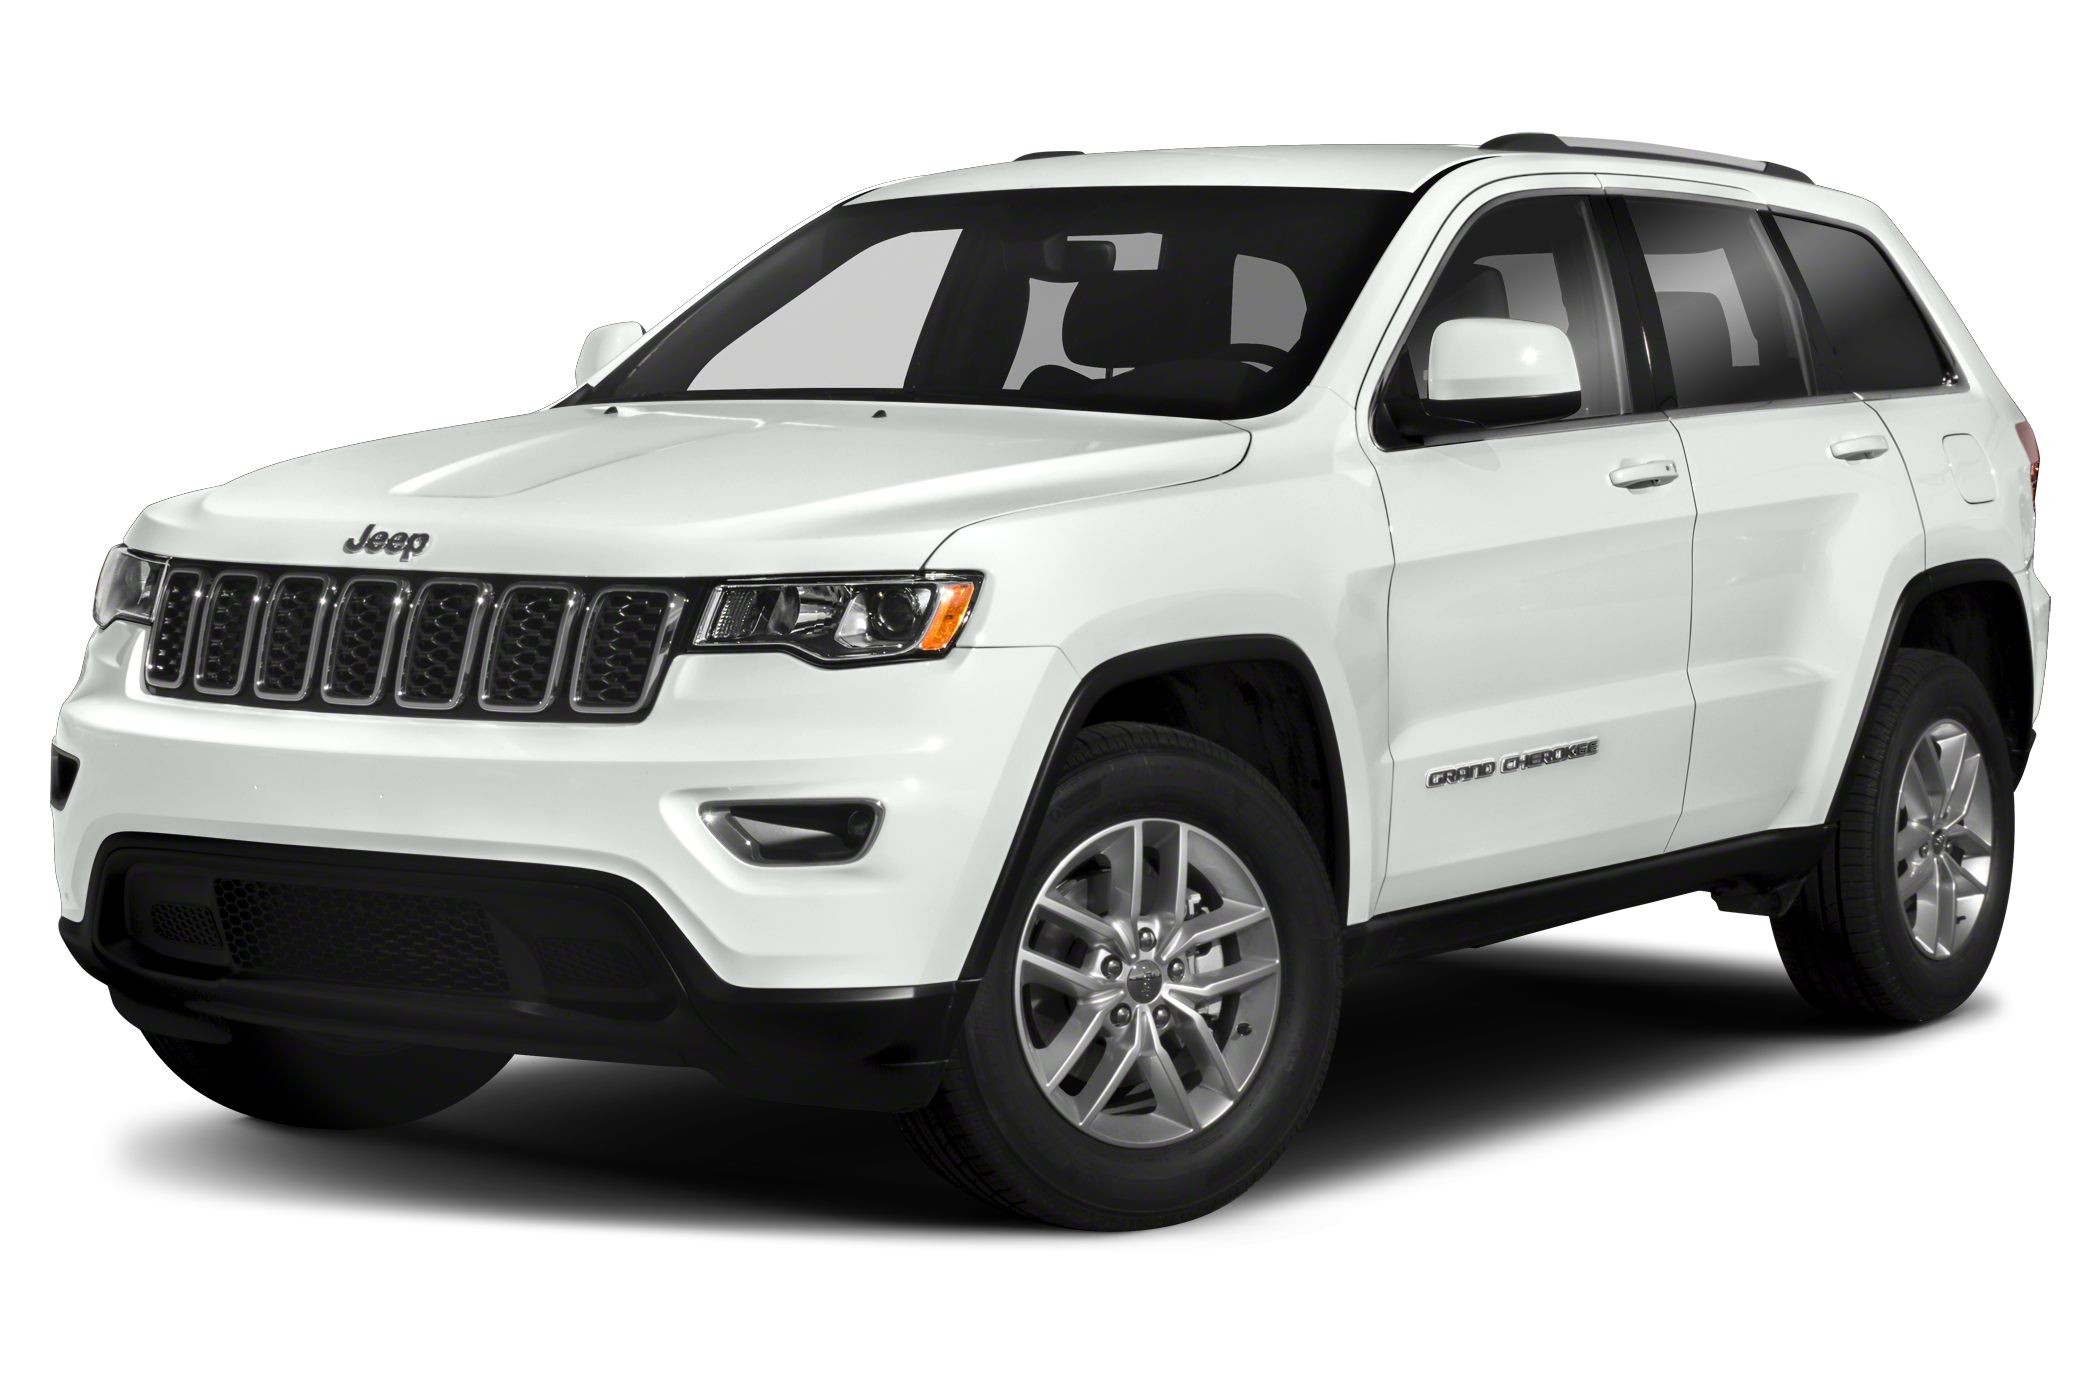 2002 Grand Cherokee Fan Schematic 2017 Jeep Grand Cherokee Owner Reviews and Ratings Of 2002 Grand Cherokee Fan Schematic